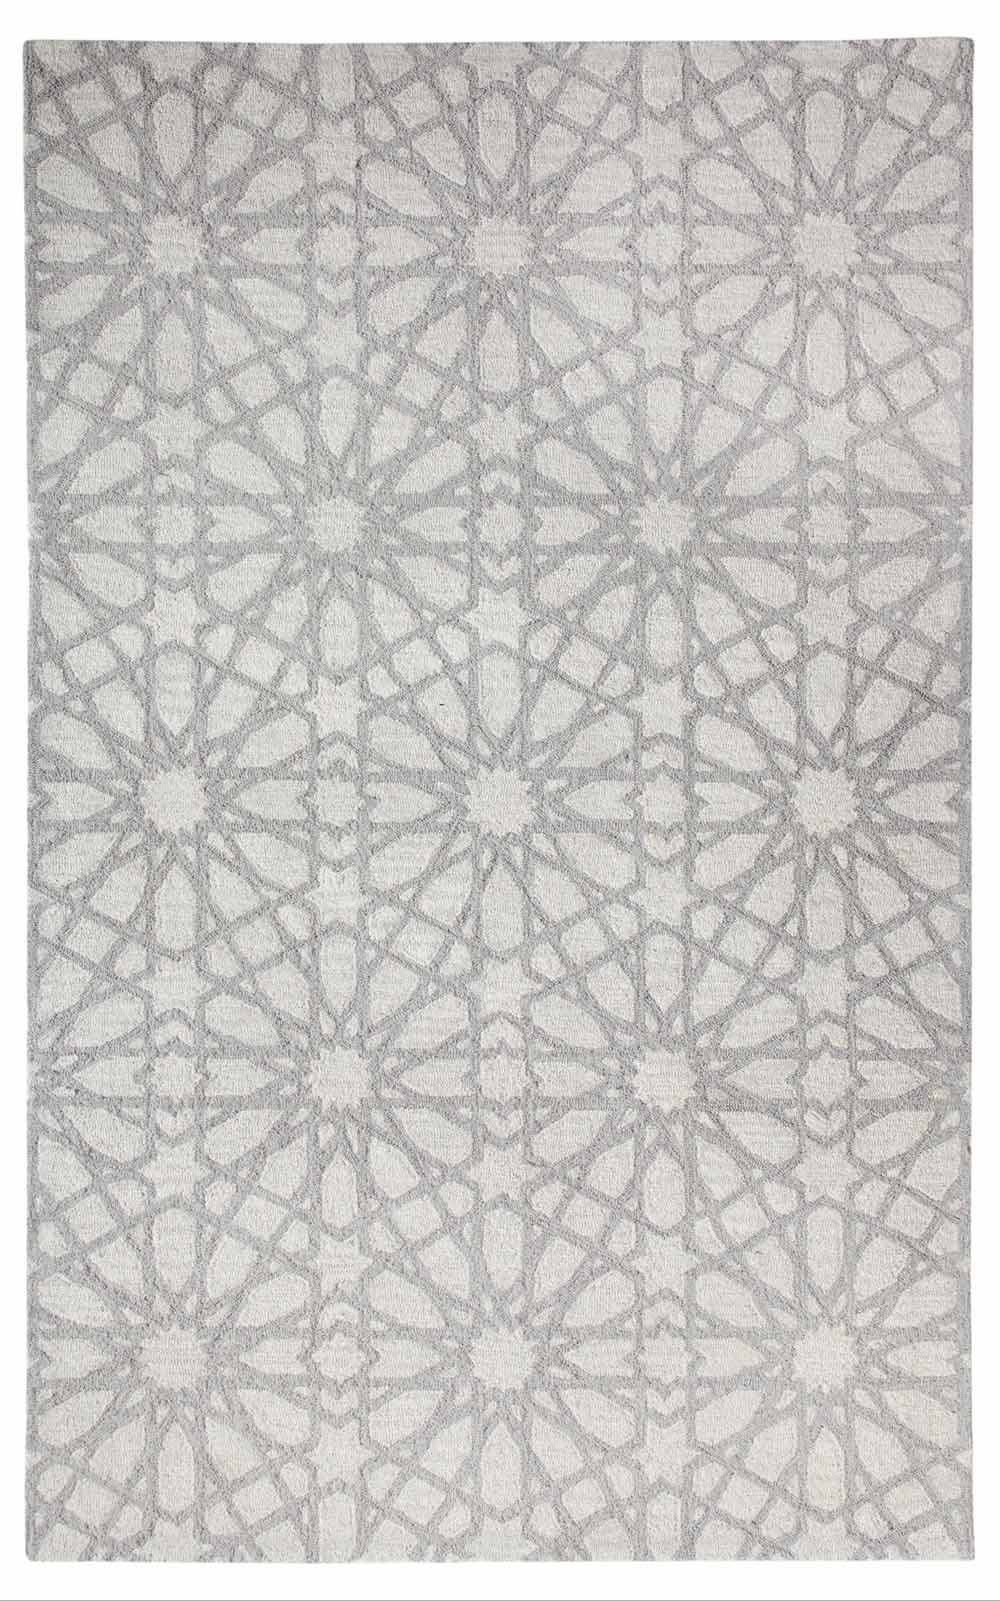 Dynamic Area Rugs Galleria 7862-900 Silver Geometric Design